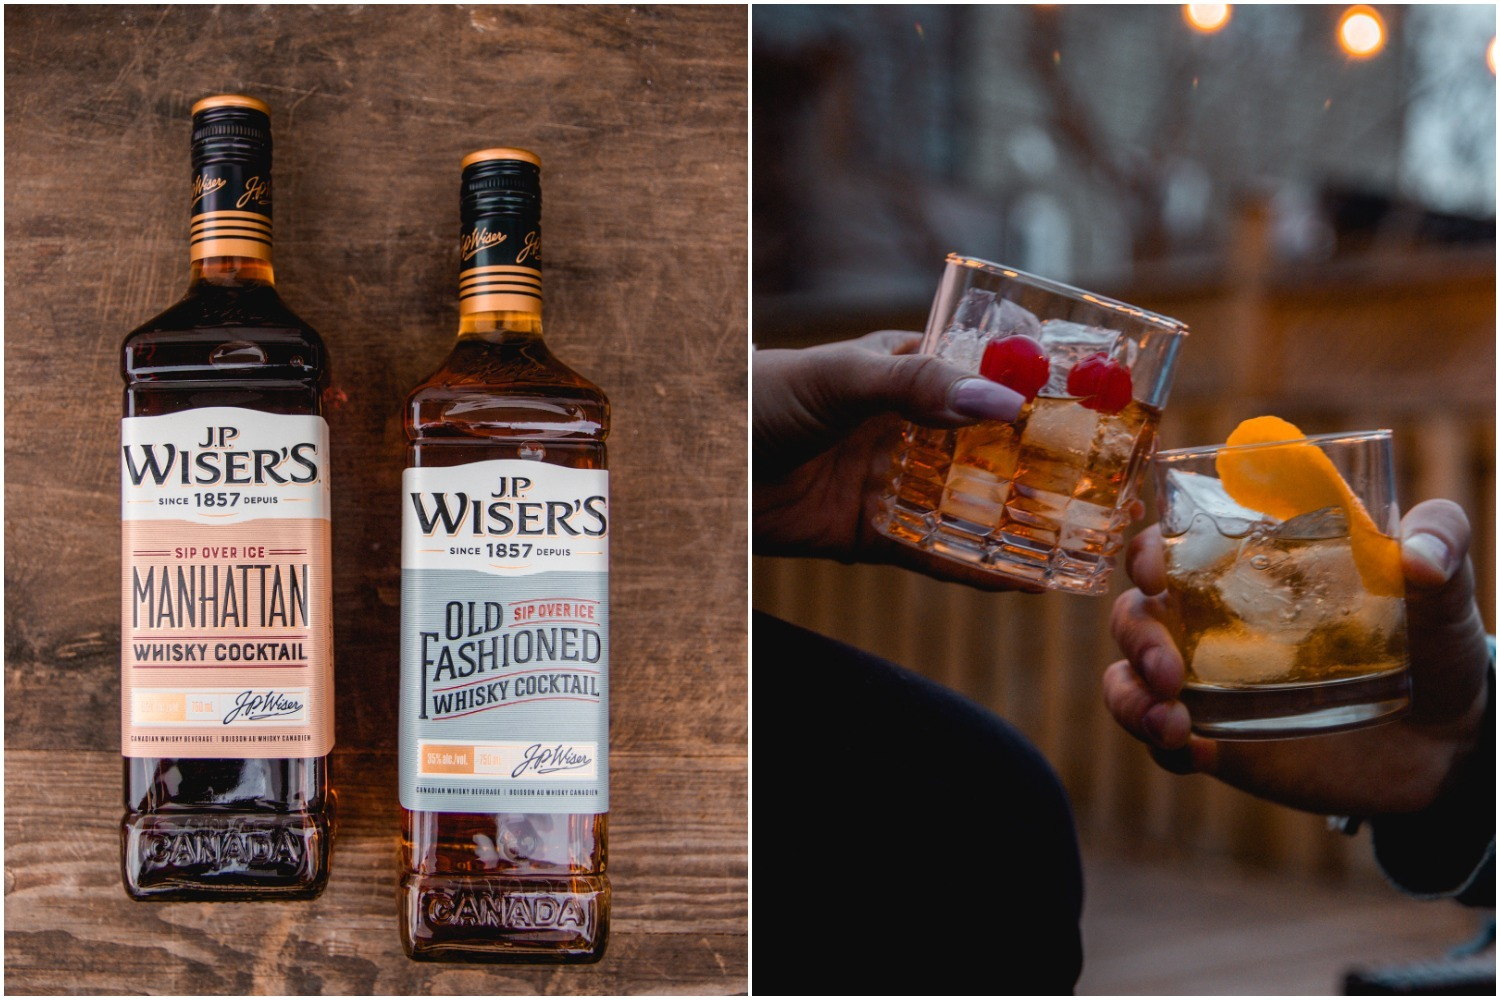 jp wisers whisky guide